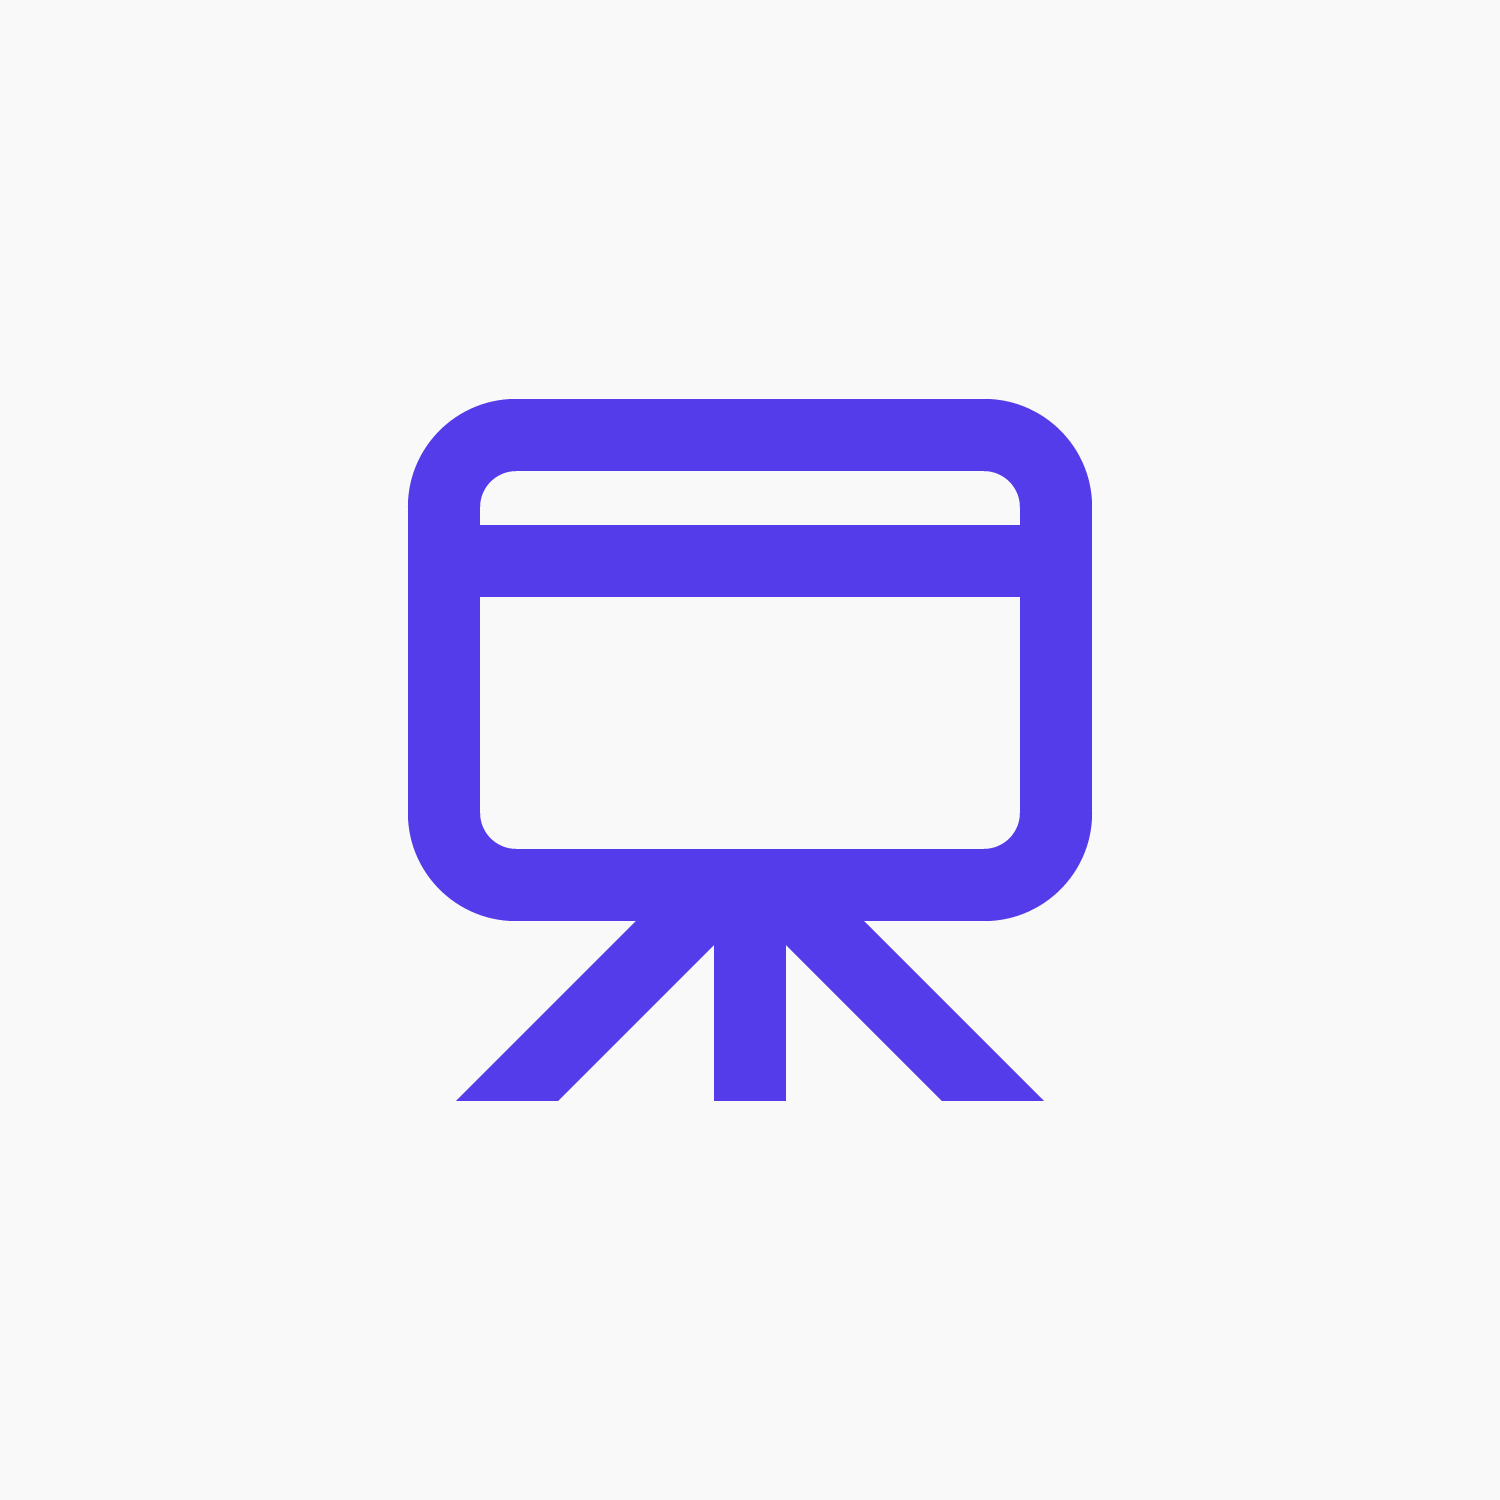 Purple presentation icon for Lightning Talks on a white background